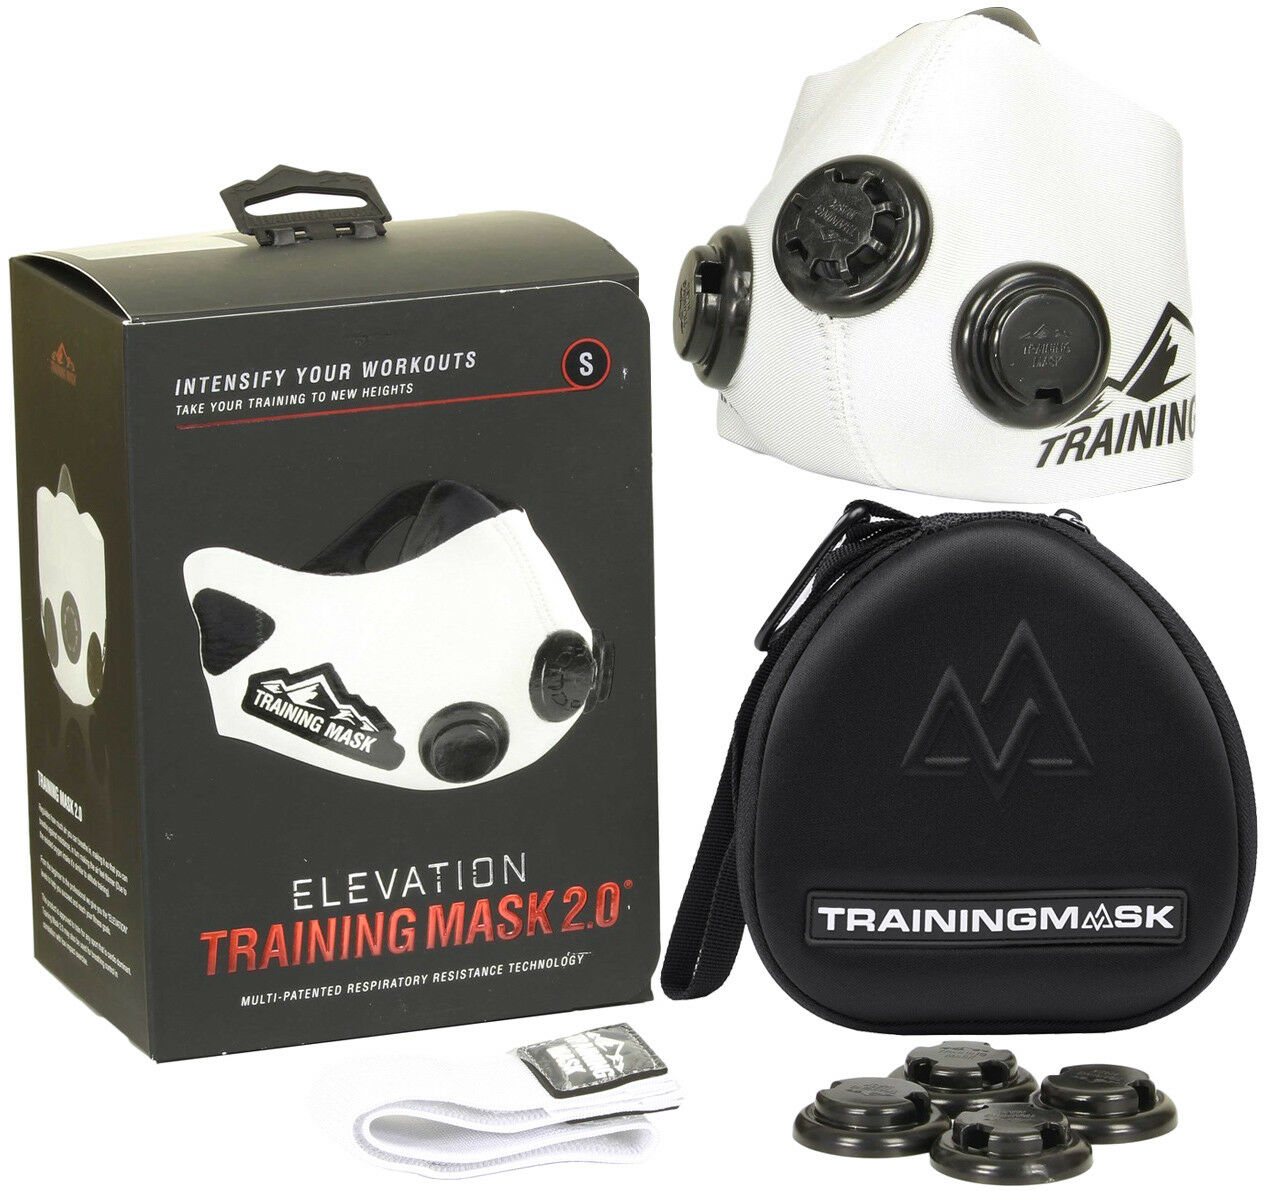 Training Mask 2.0 Whiteout Edition + CASE - All Sizes - Increase Lung Strength